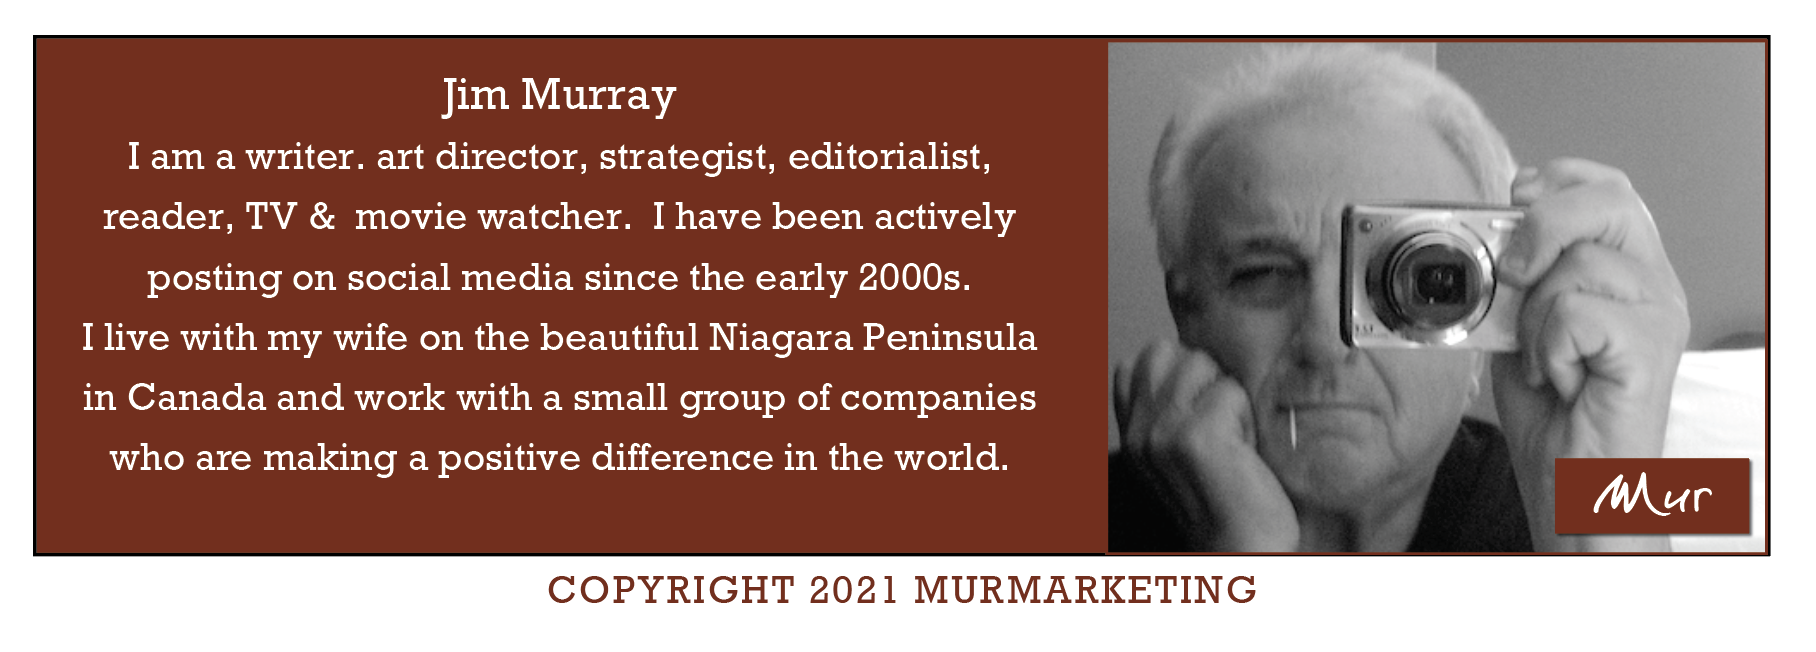 Jim Murray I am a writer. art director, strategist, editorialist, reader, TV & movie watcher. I have been actively  posting on social media since the early 2000s.  I live with my wife on the beautiful Niagara Peninsula  in Canada and work with a small group of companies  who are making a positive difference in the world.  COPYRIGHT 2021 MURMARKETING